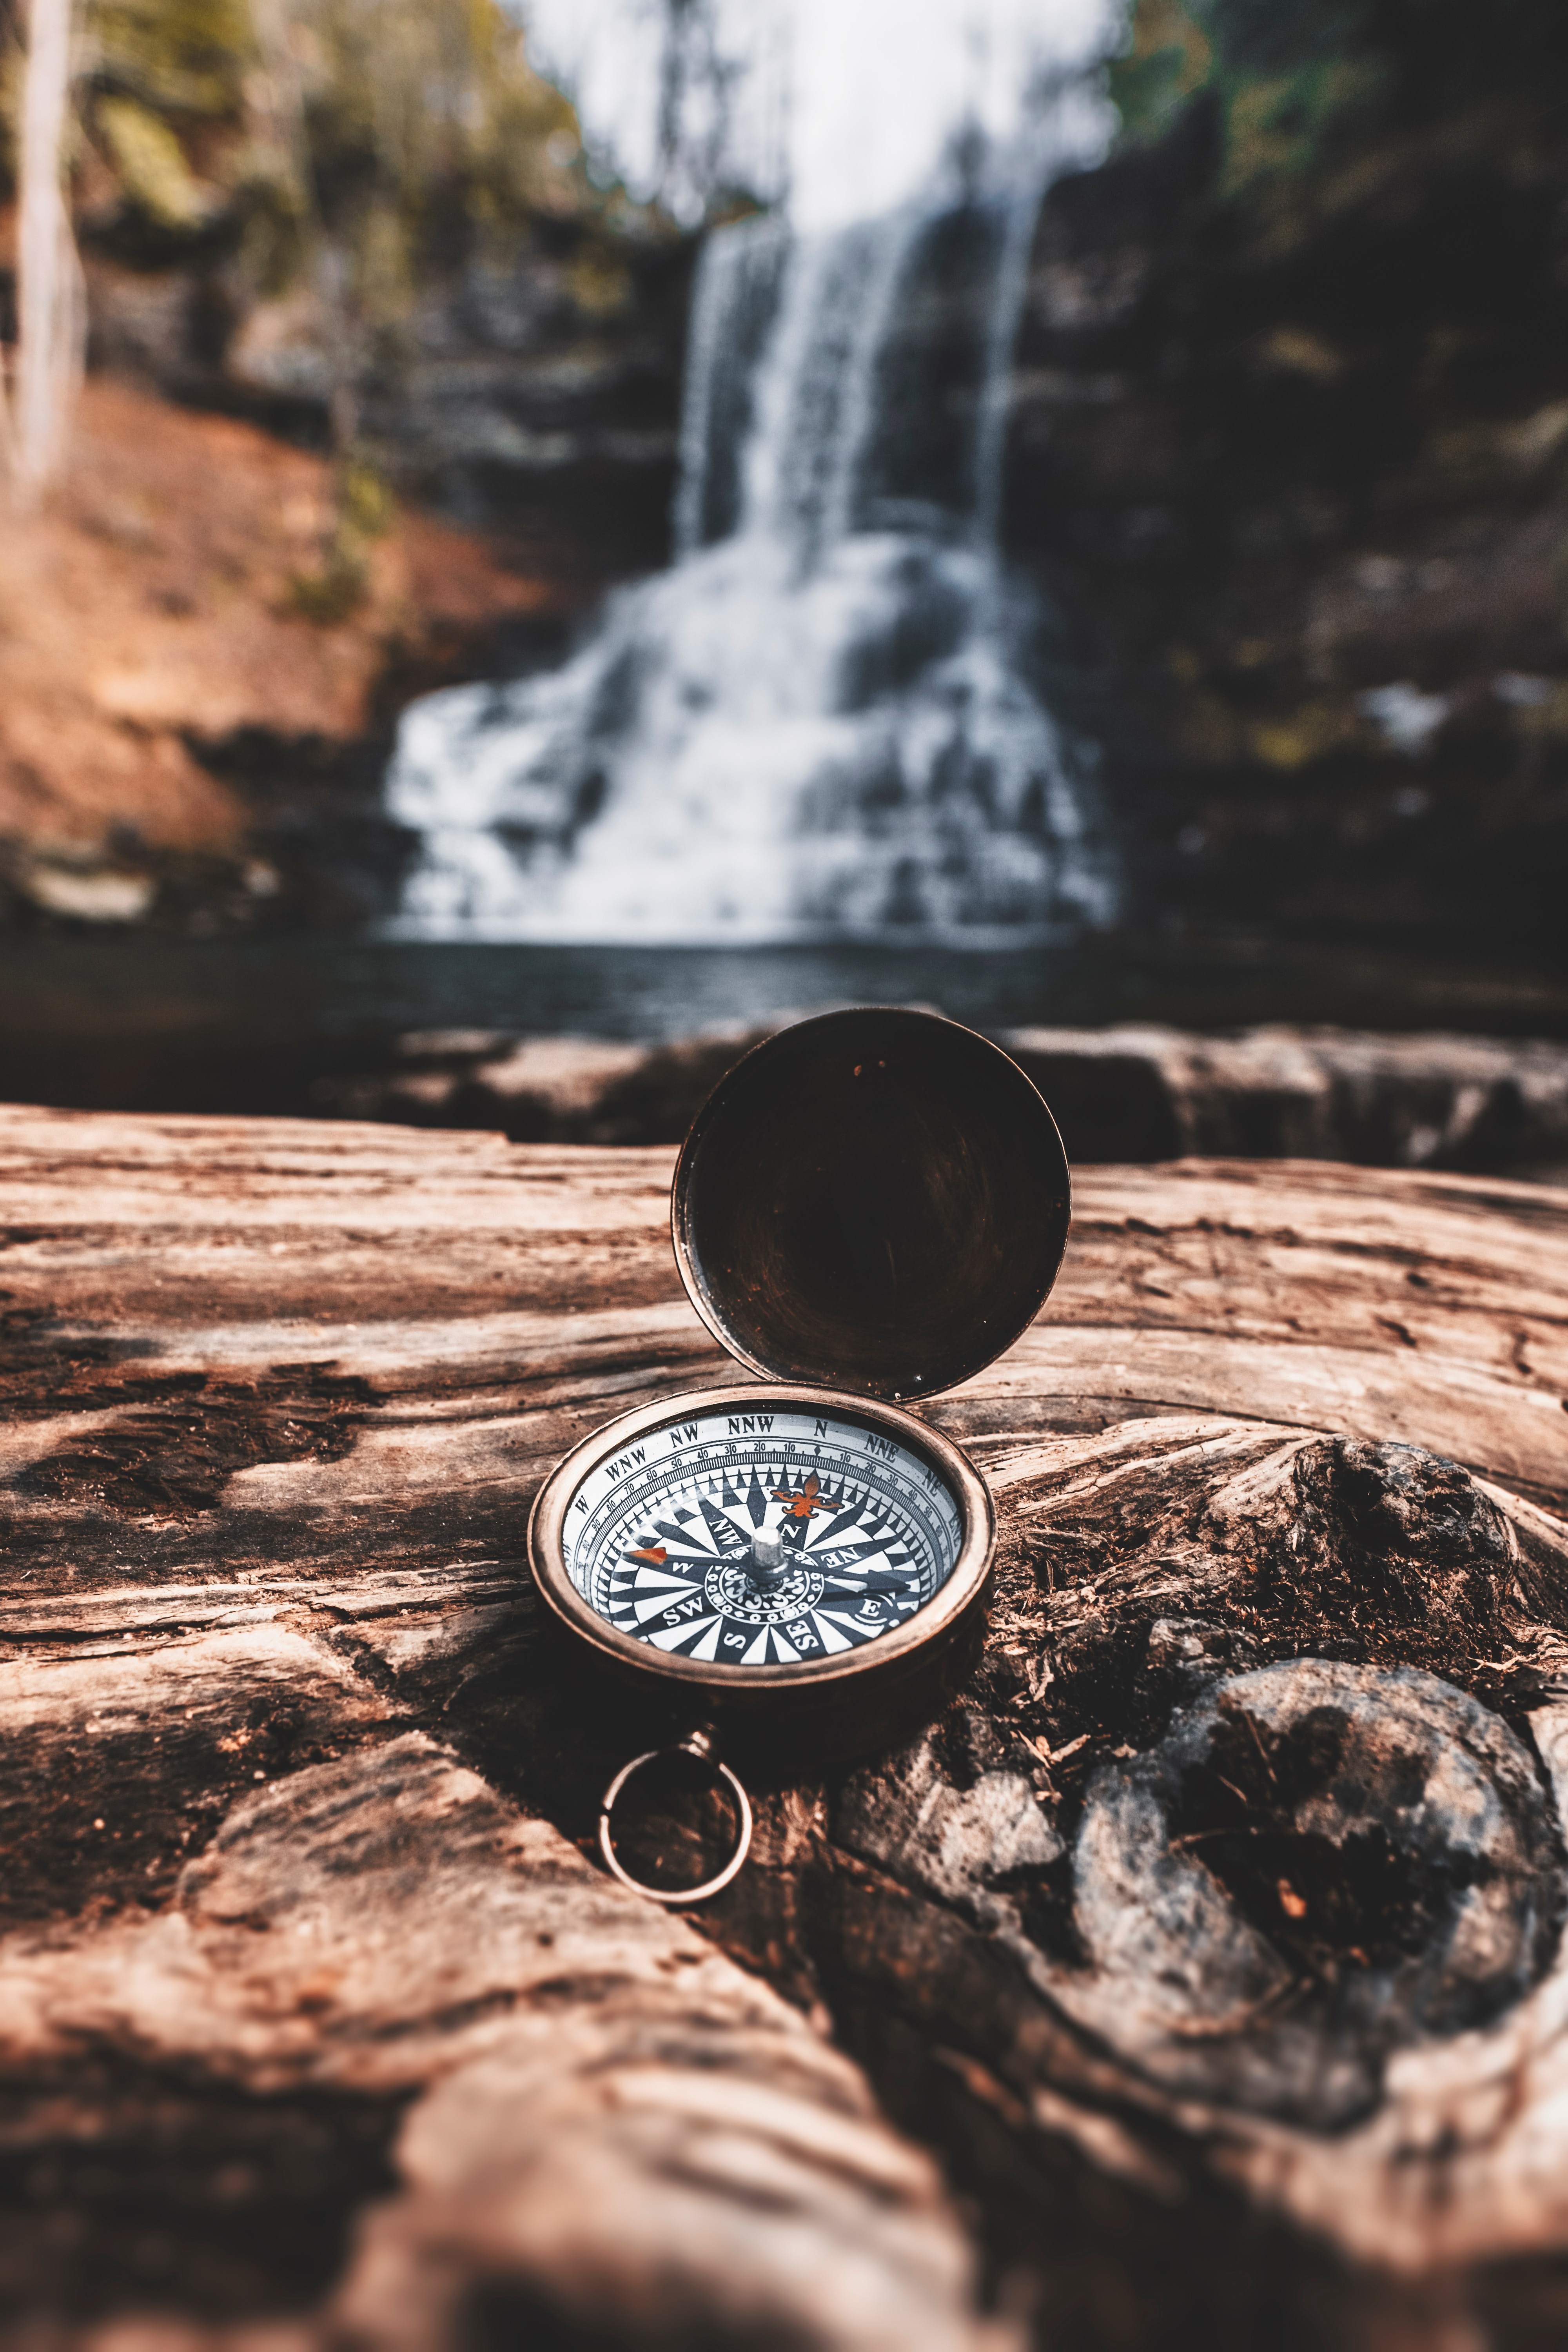 Image by Bryan Minear